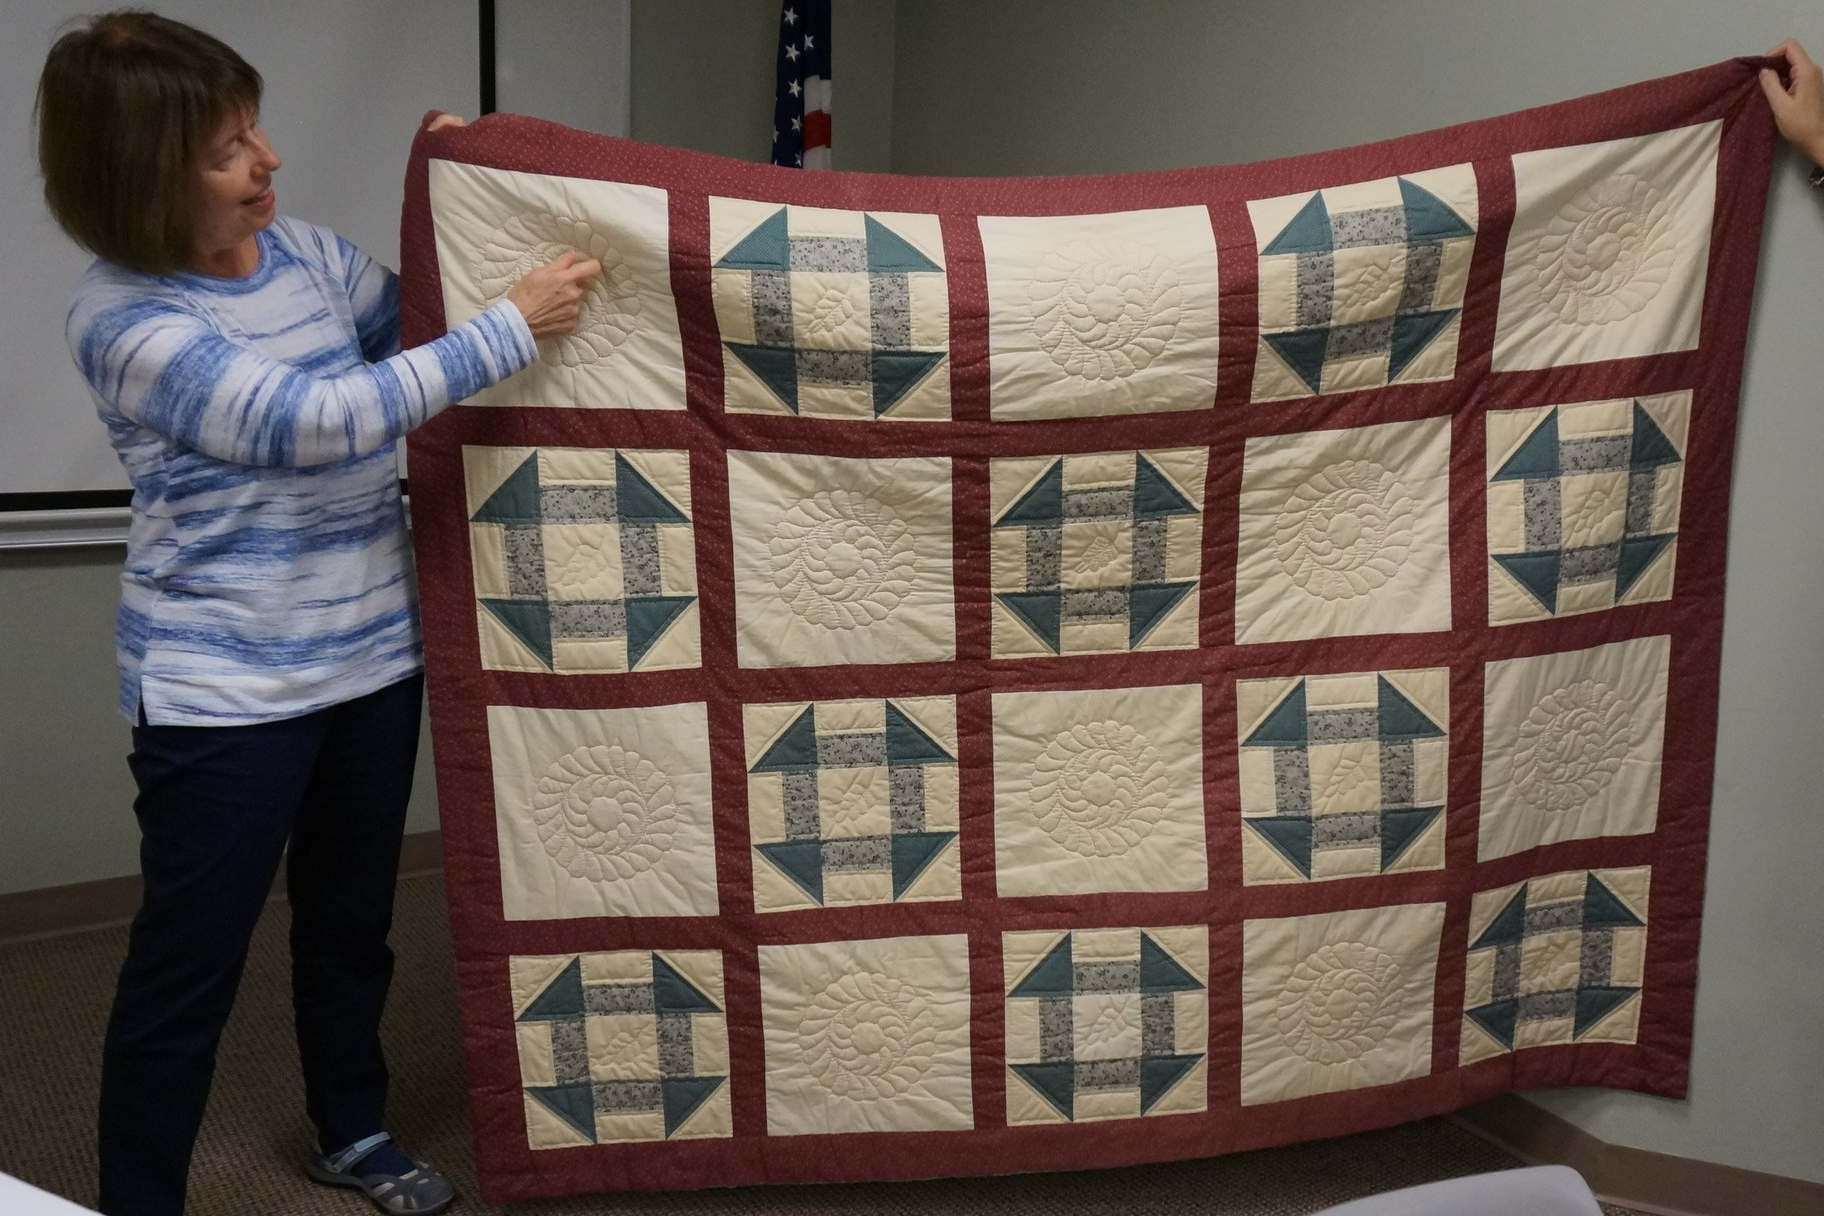 - Denise made this quilt during a class she took in Bristol in the 1980s. She didn't realize she was supposed to finish the whole top before layering and quilting the blocks, so she had to do some creative sewing to put the quilt together.